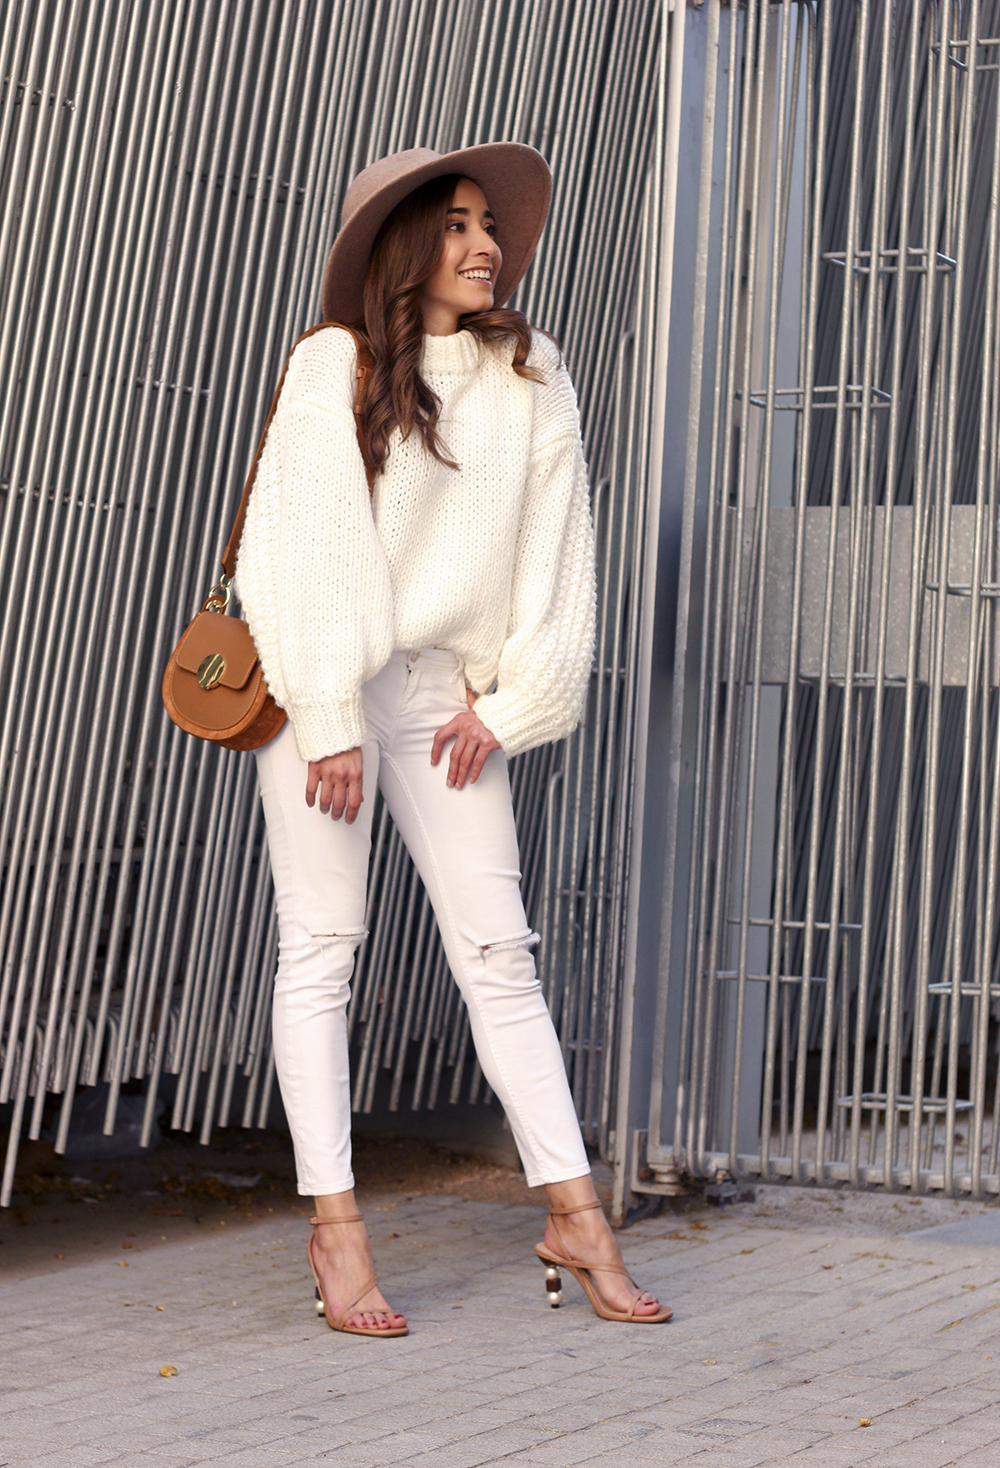 white outfit  beige hat beige bag street style casual outfit 20194